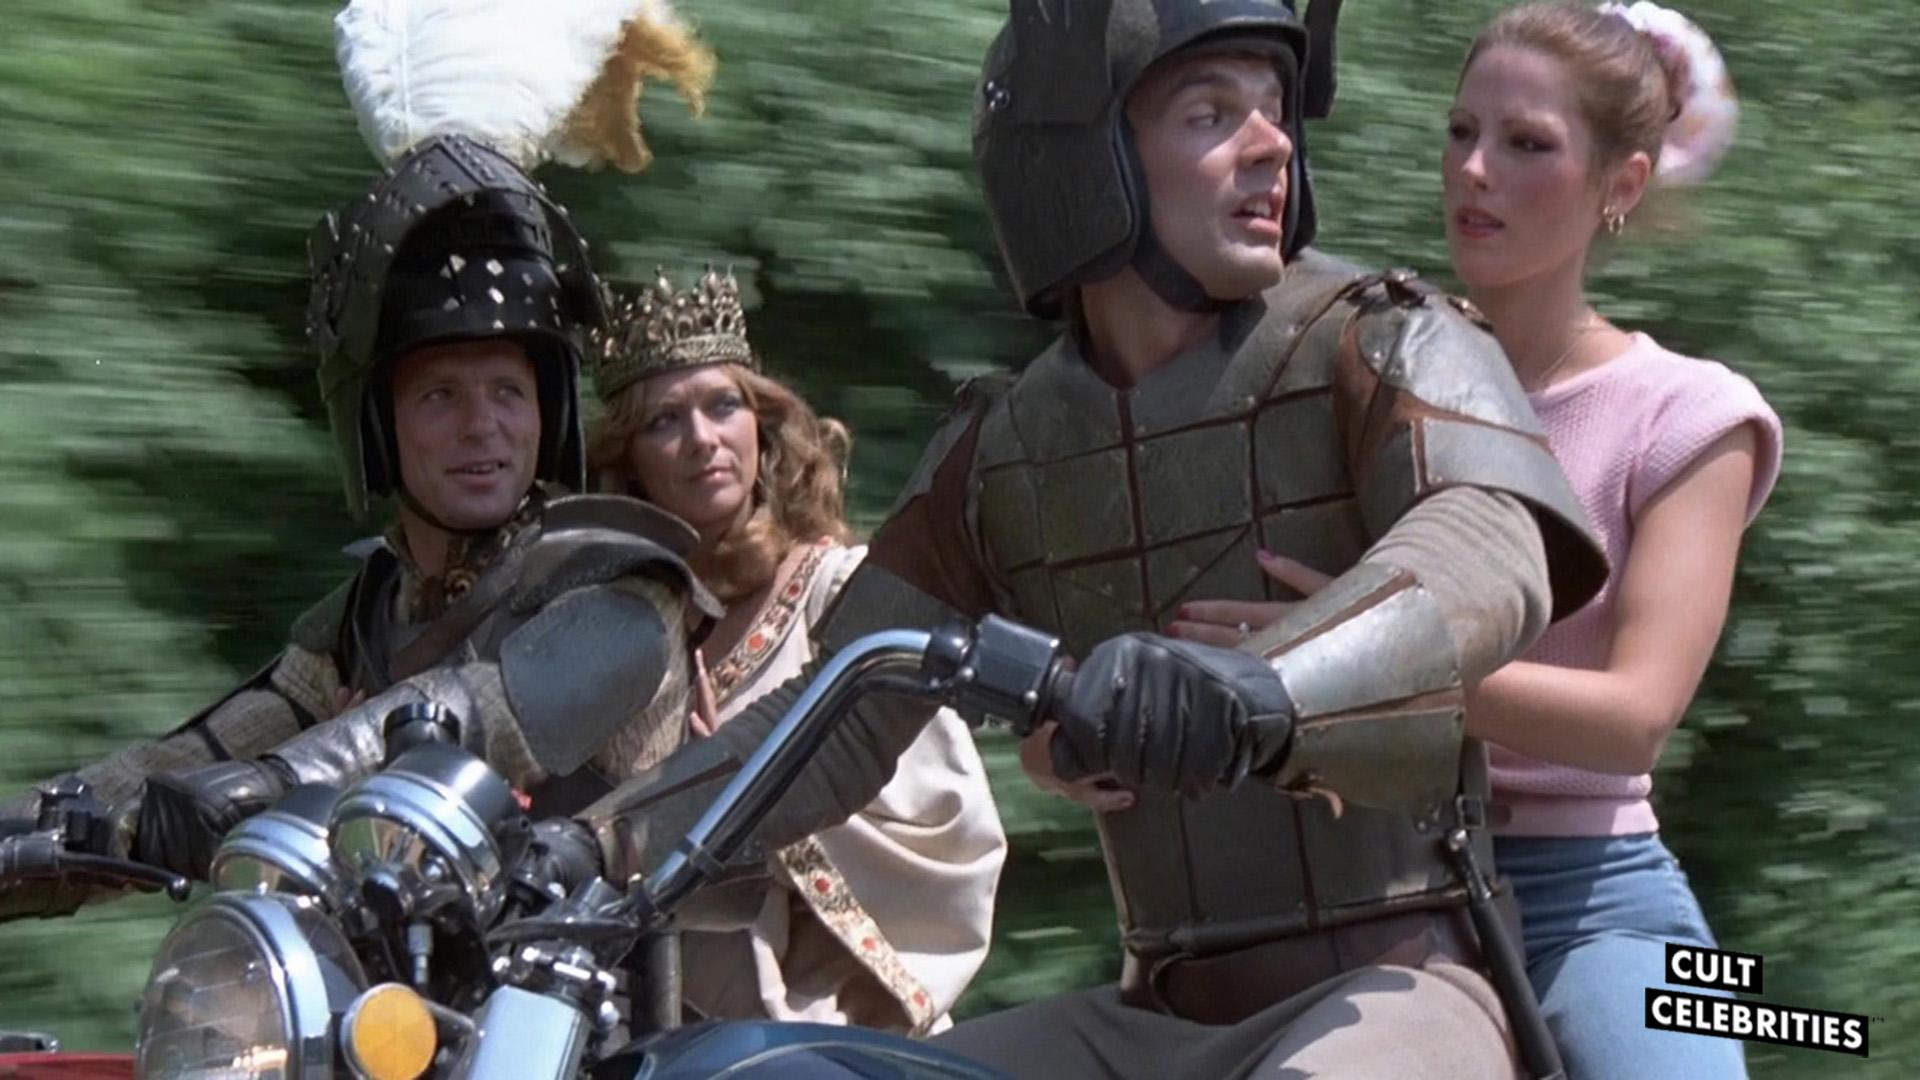 Ed Harris, Amy Ingersoll, Gary Lahti and Patricia Tallman in Knightriders (1981)